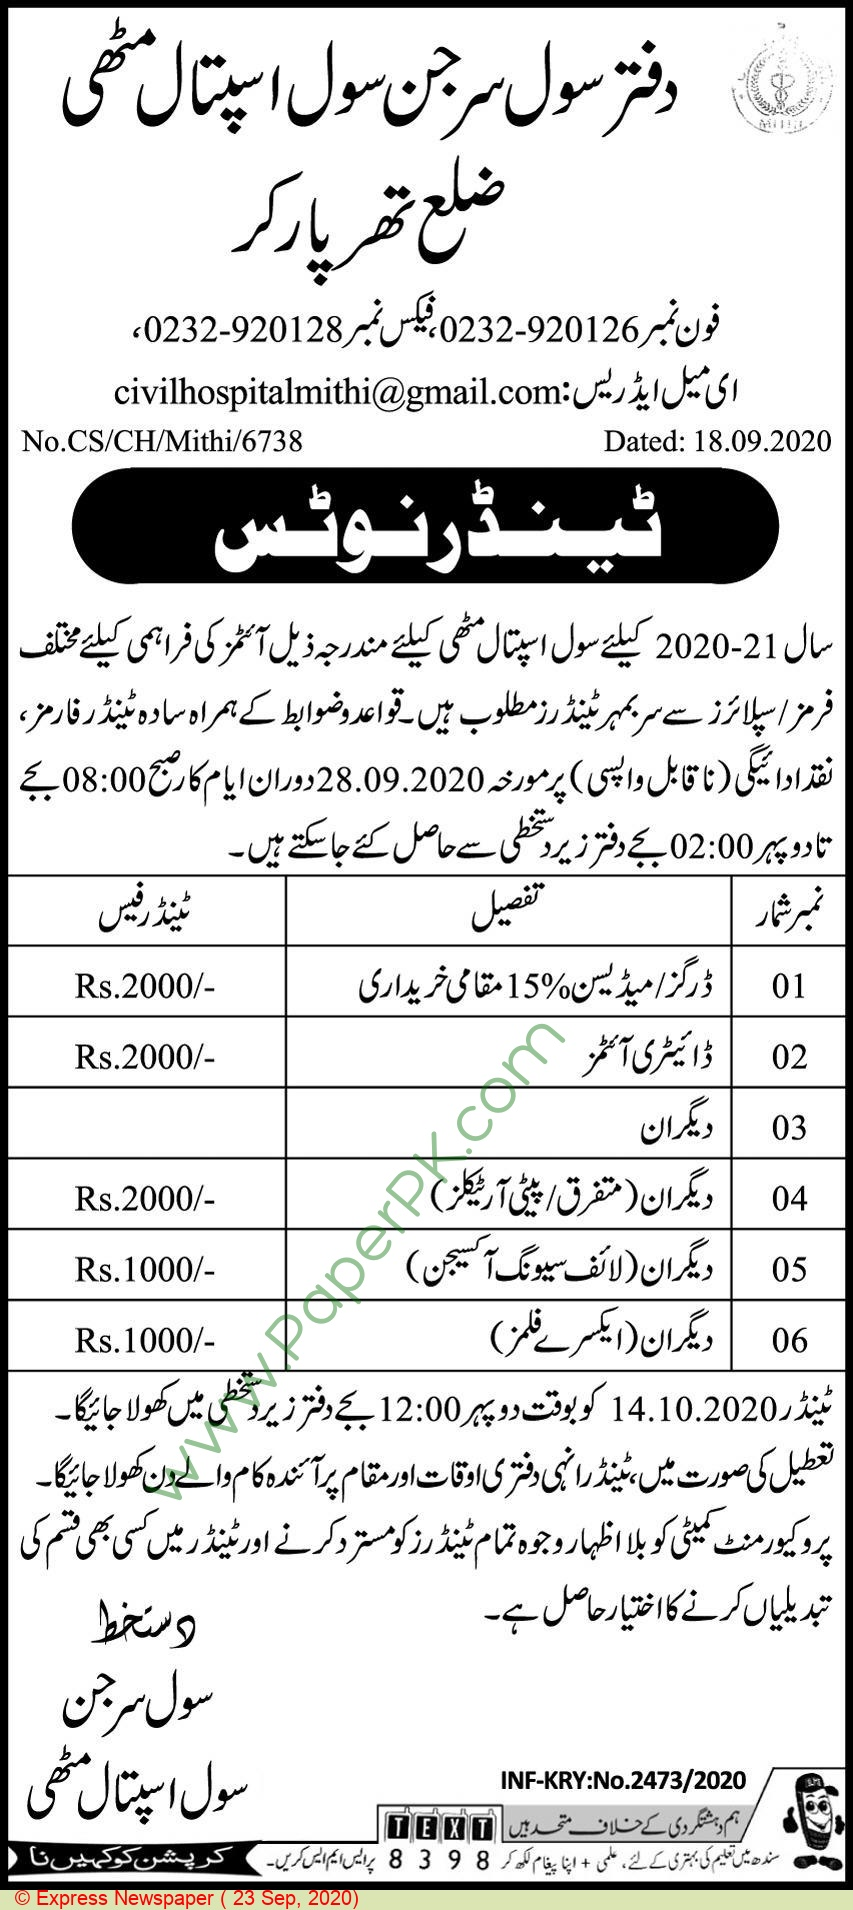 Civil Surgeon Civil Hospital Mithi Tender Notice In Express Newspaper Pakistan On 23 September 2020 Paperads Com